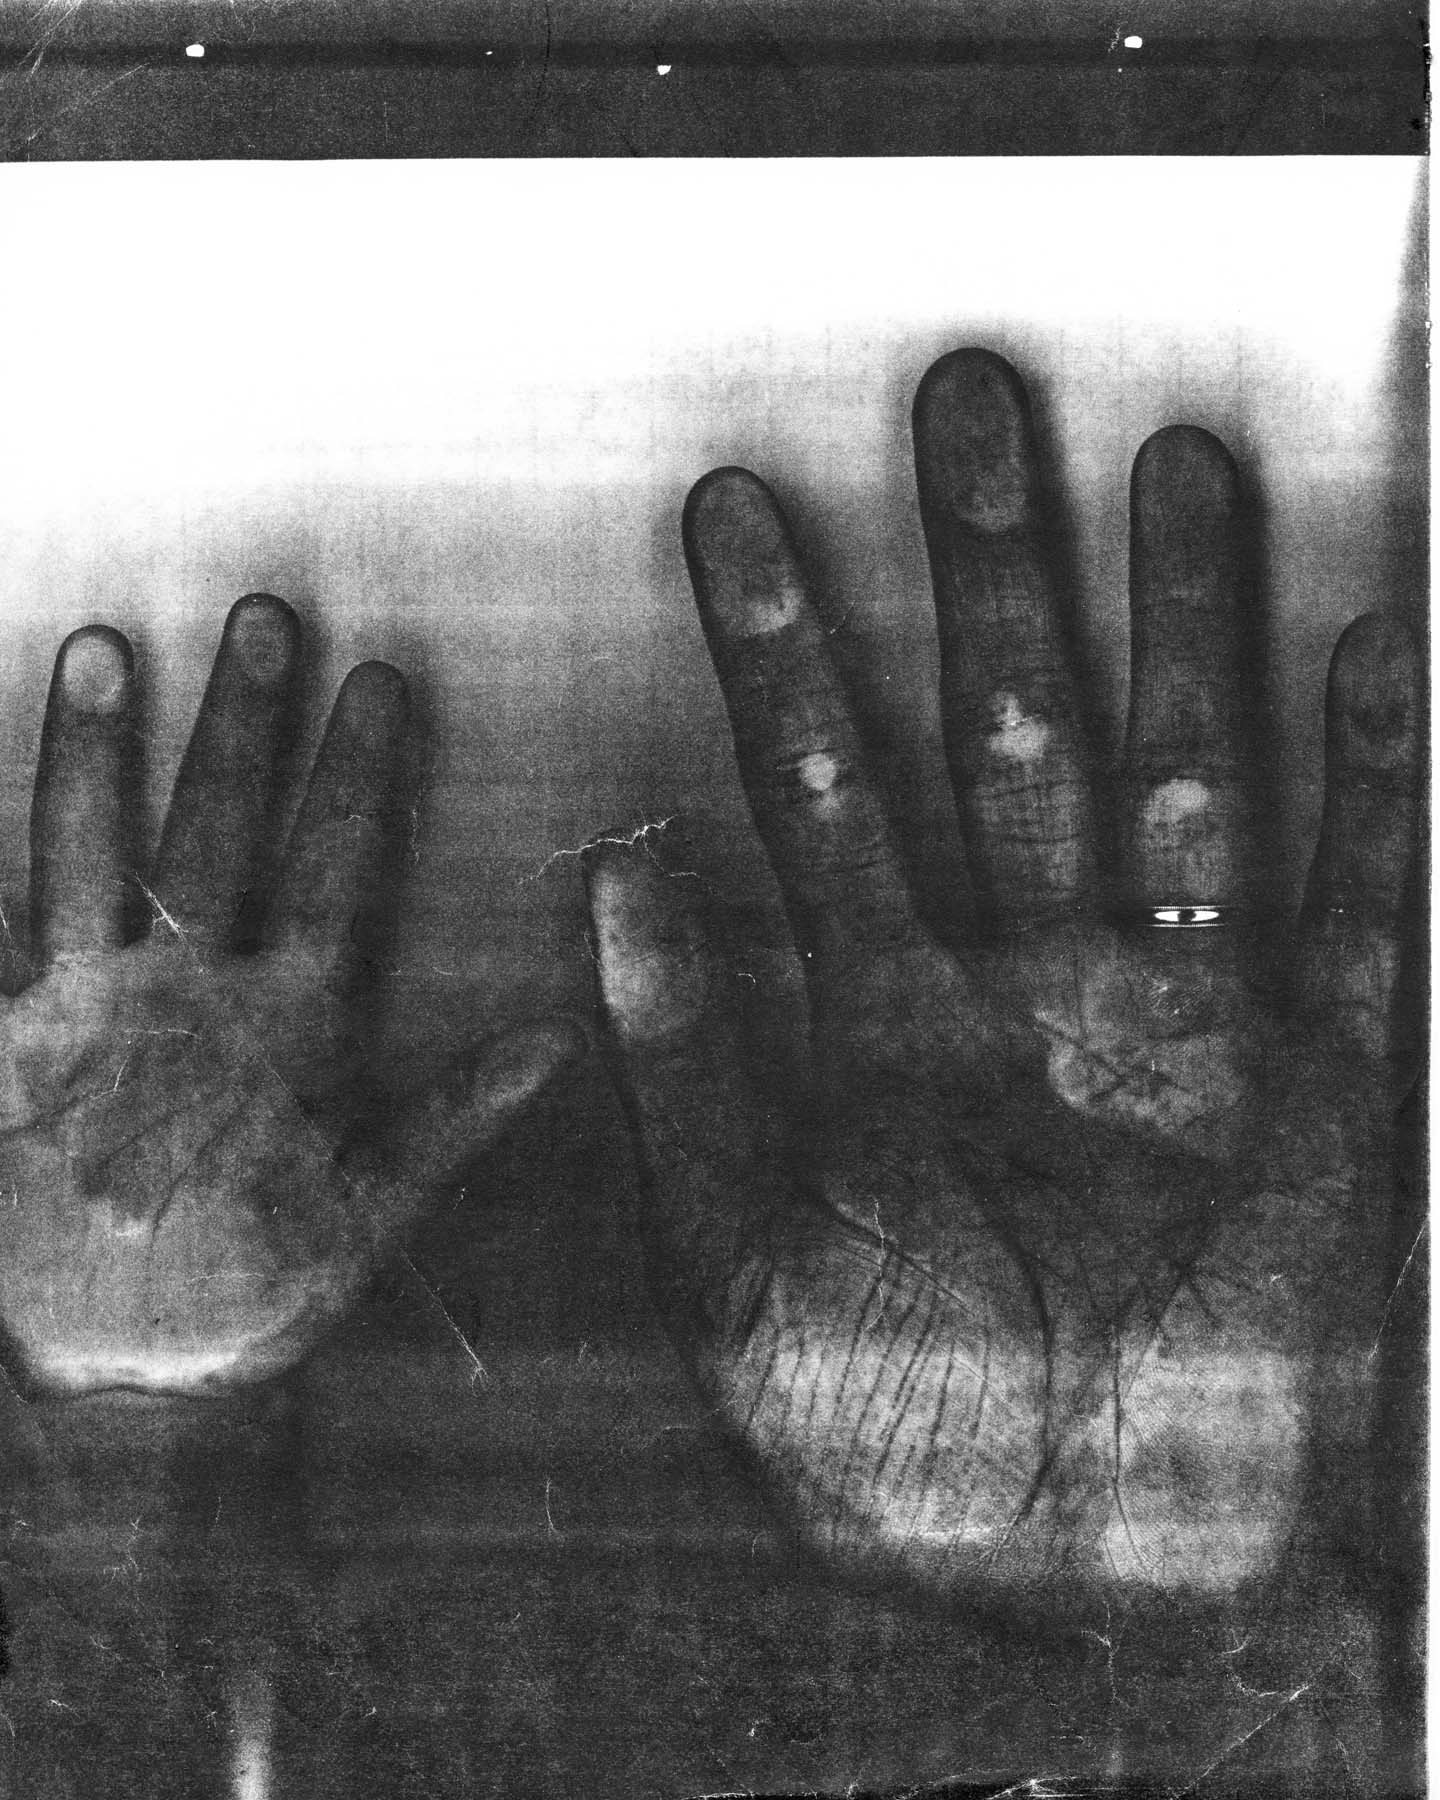 These Hands, 2017